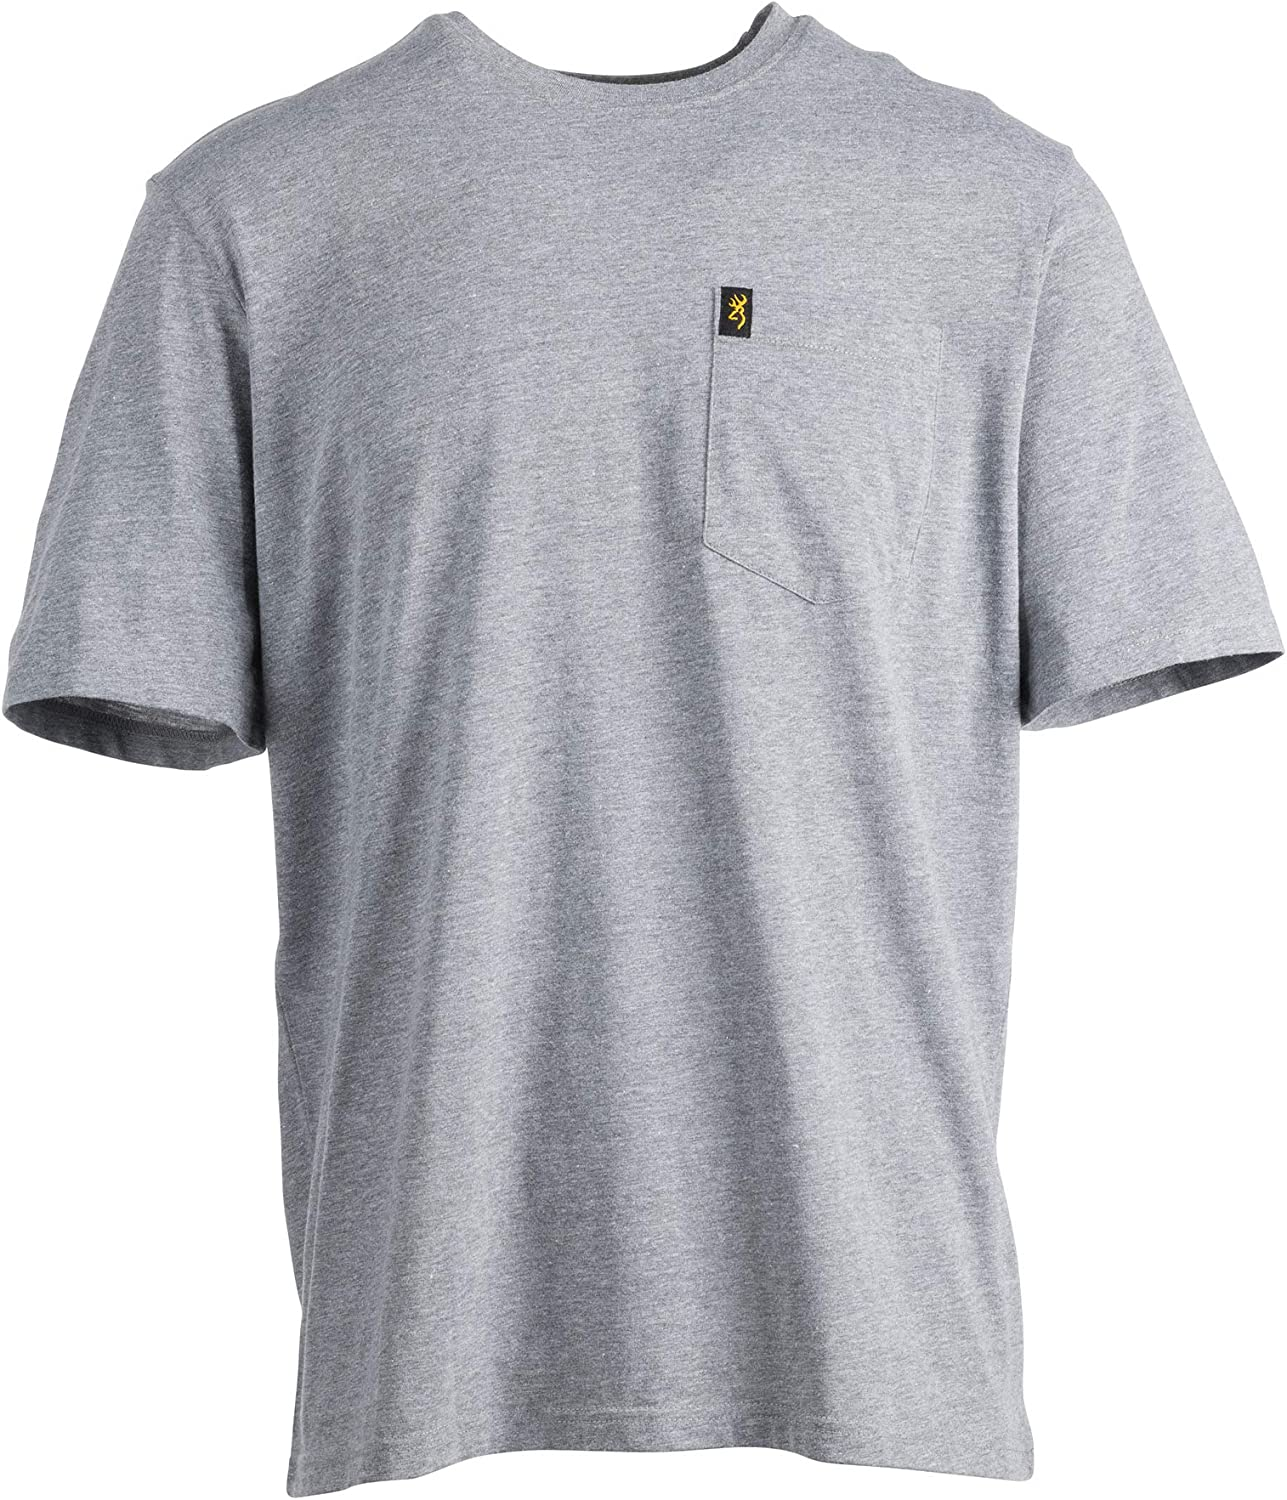 Browning Mens Pocket Tee: Clothing